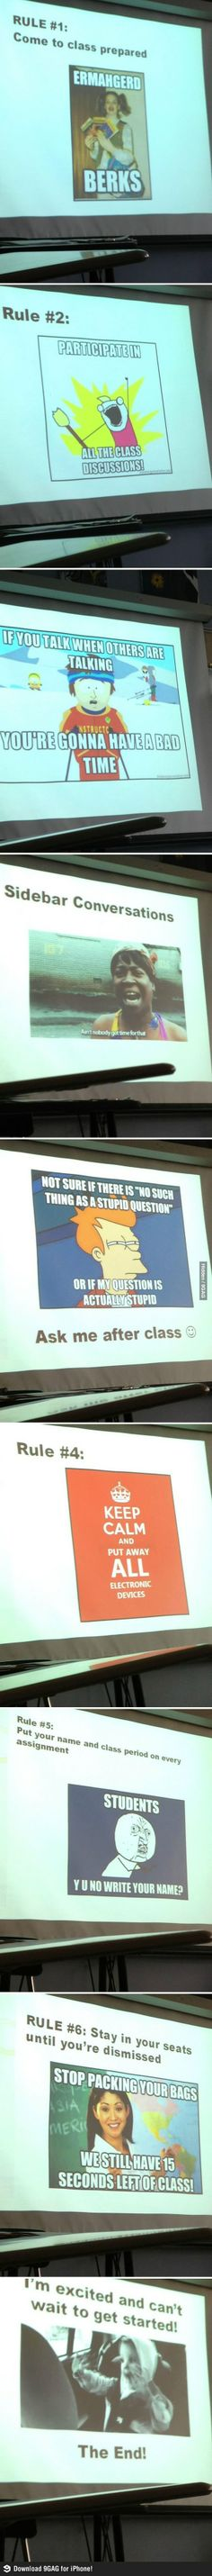 Memes + PowerPoint: Creative way to present the class rules to students!